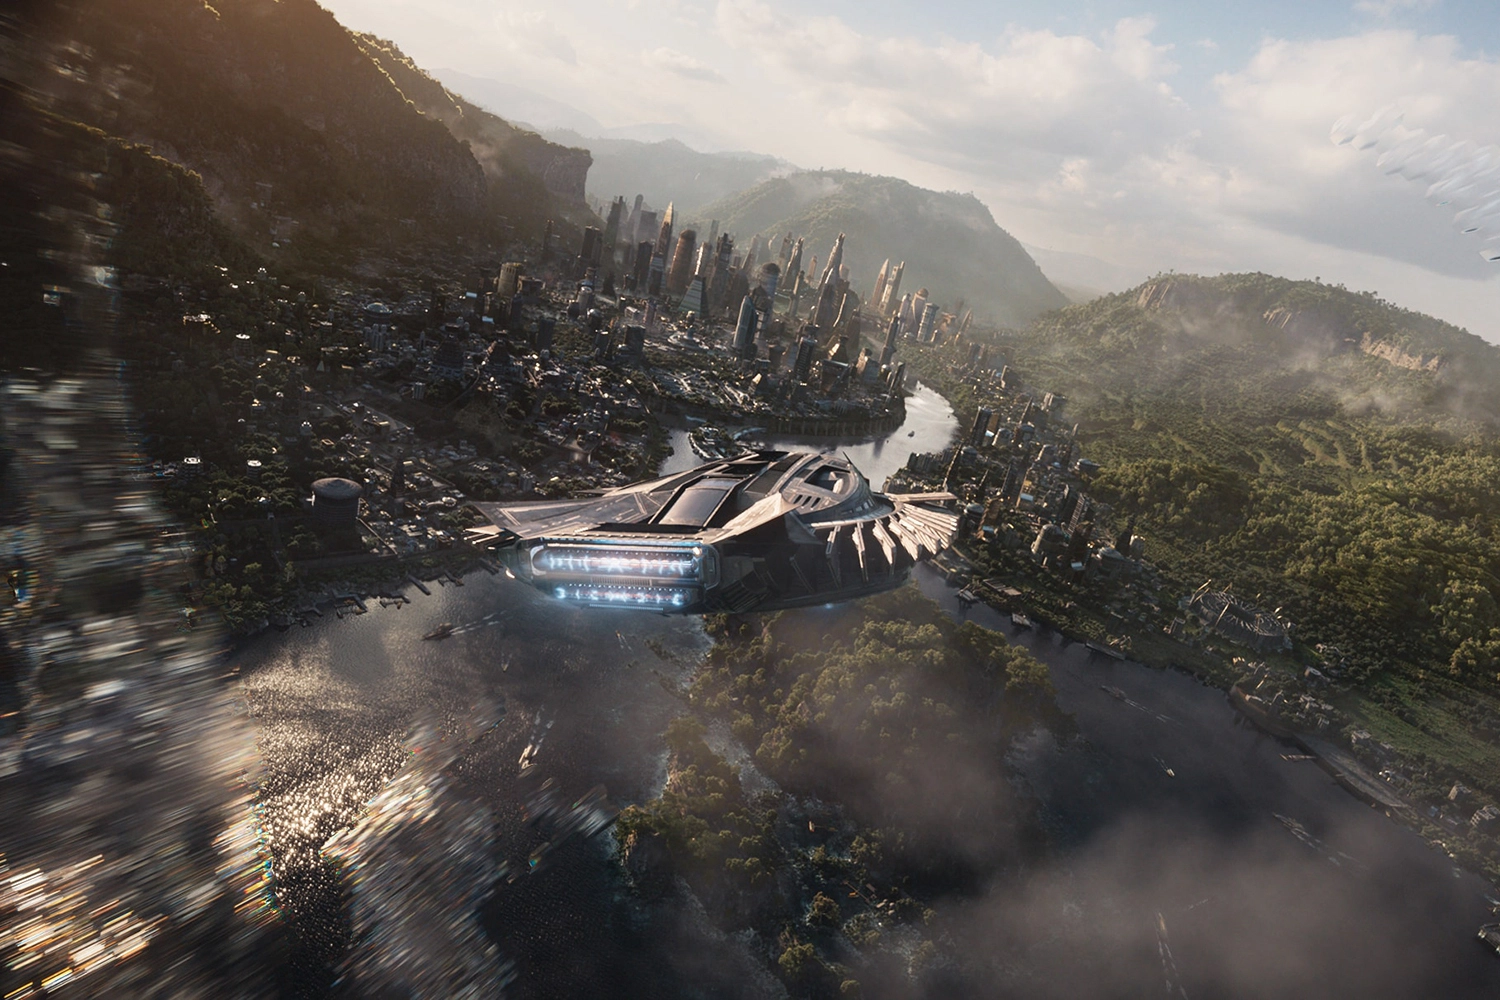 <p>Wakanda, the fictional super-advanced African nation rendered in Marvel Studio's movie of <em>Black Panther </em>(2018), is hidden from view from the rest of the world as a form of self-protection. Credit: Marvel Studios.</p>